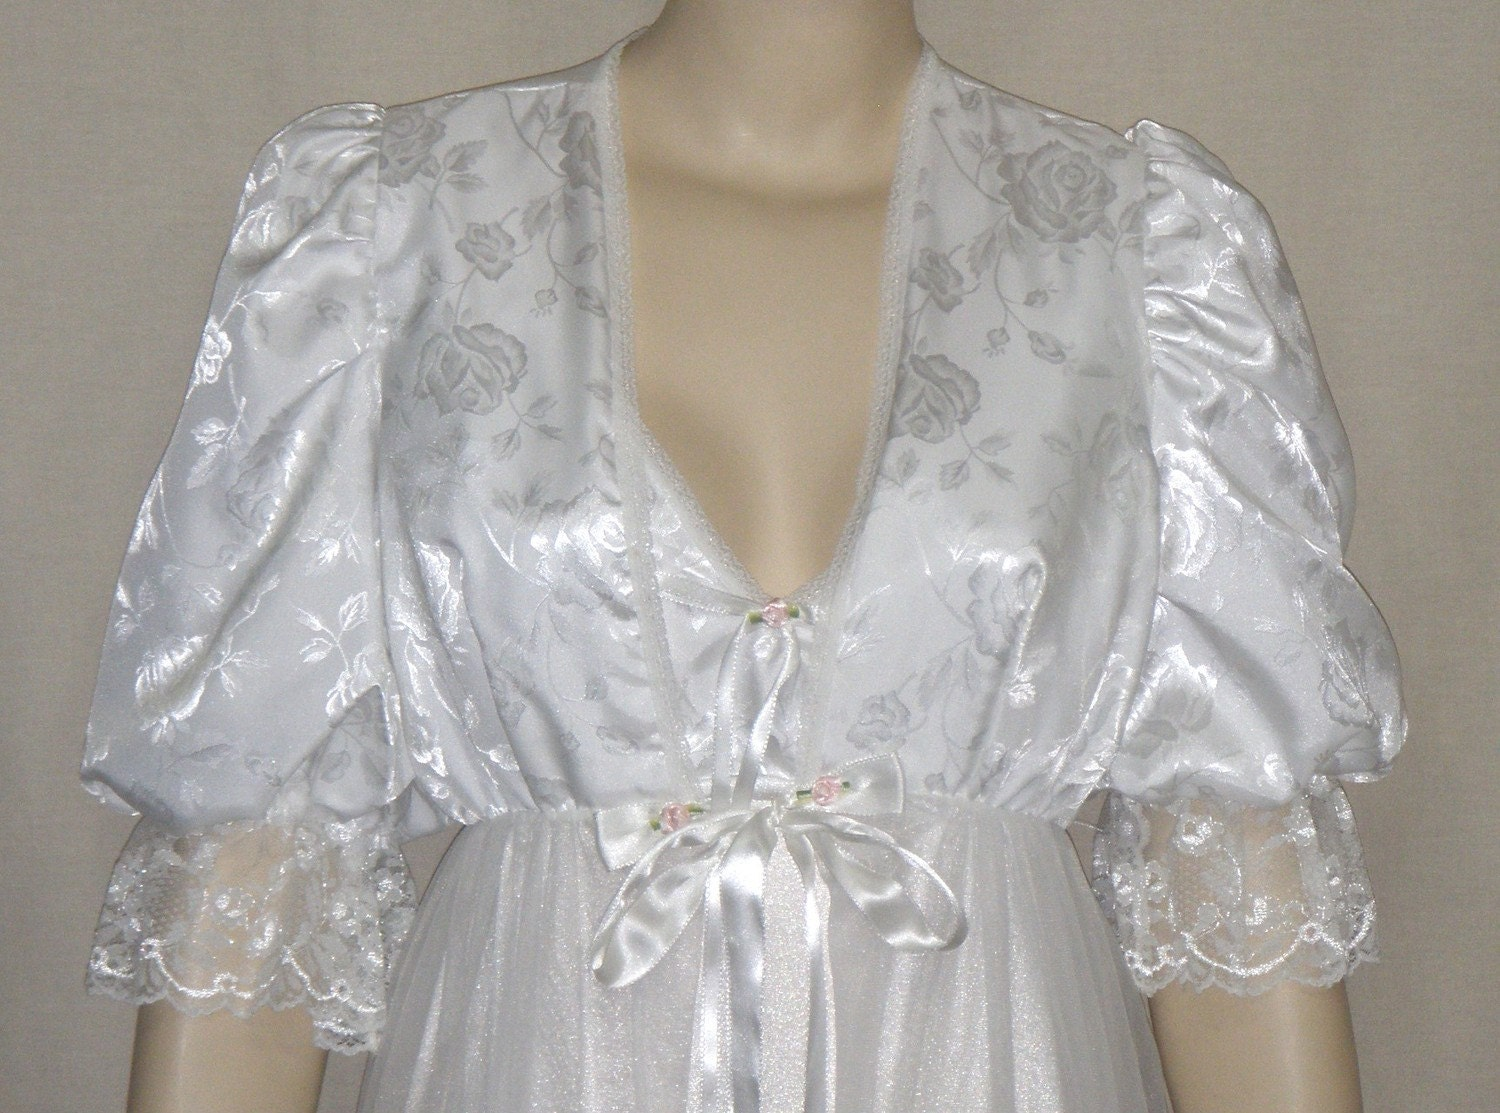 Vintage Tosca Peignoir Nightgown Robe Set Small Wedding White